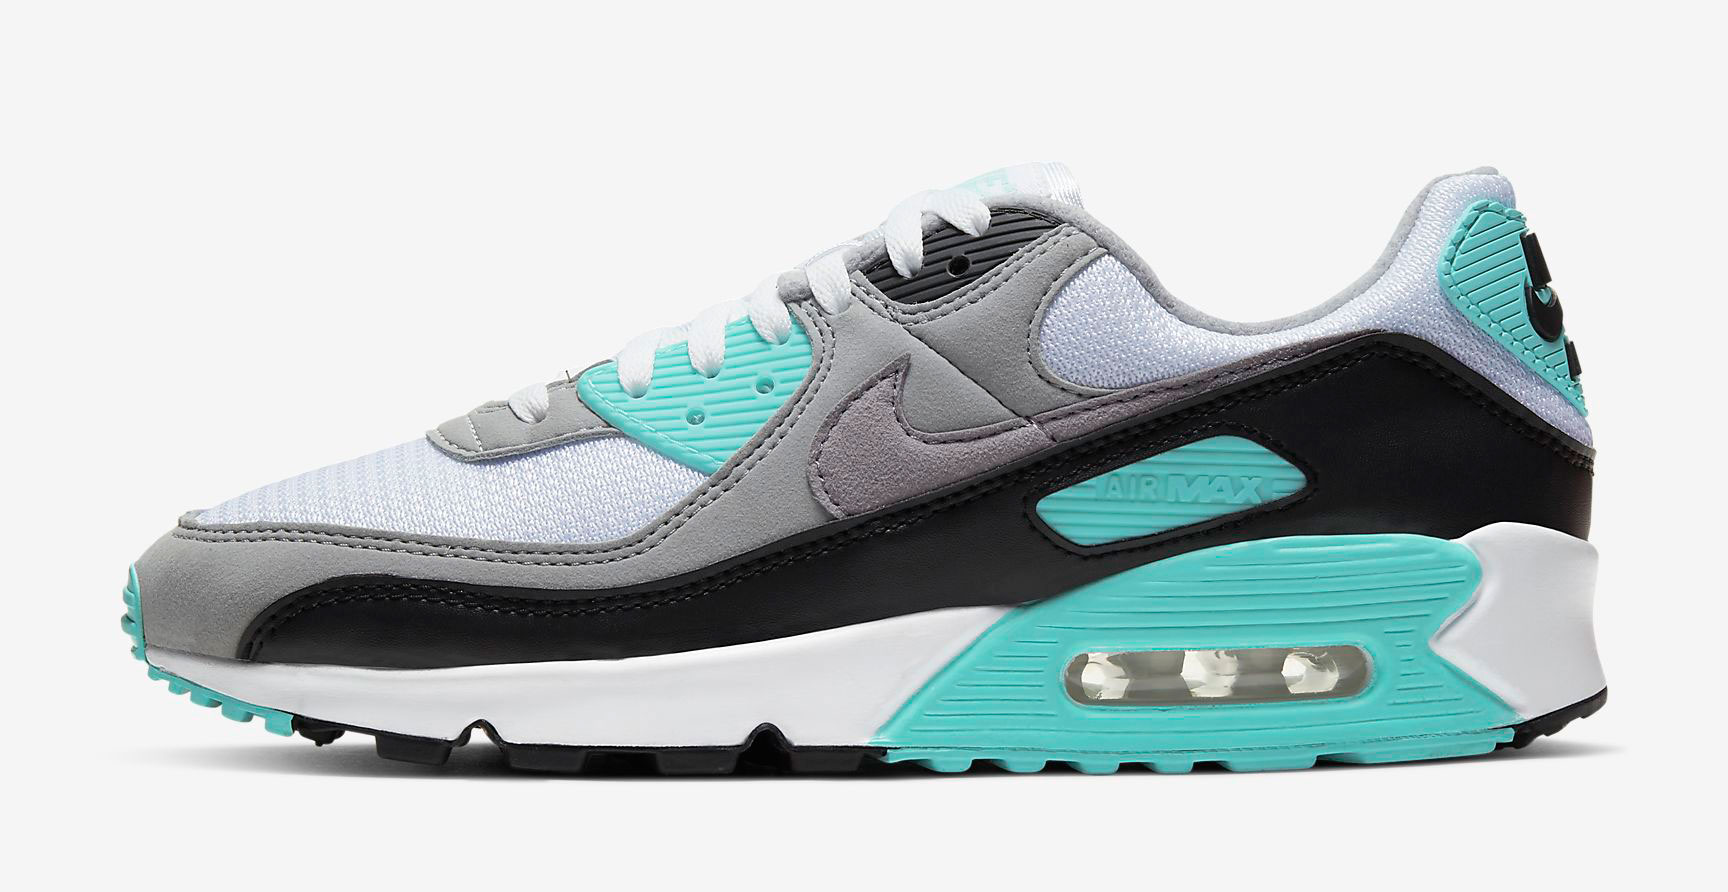 nike-air-max-90-hyper-turquoise-release-date